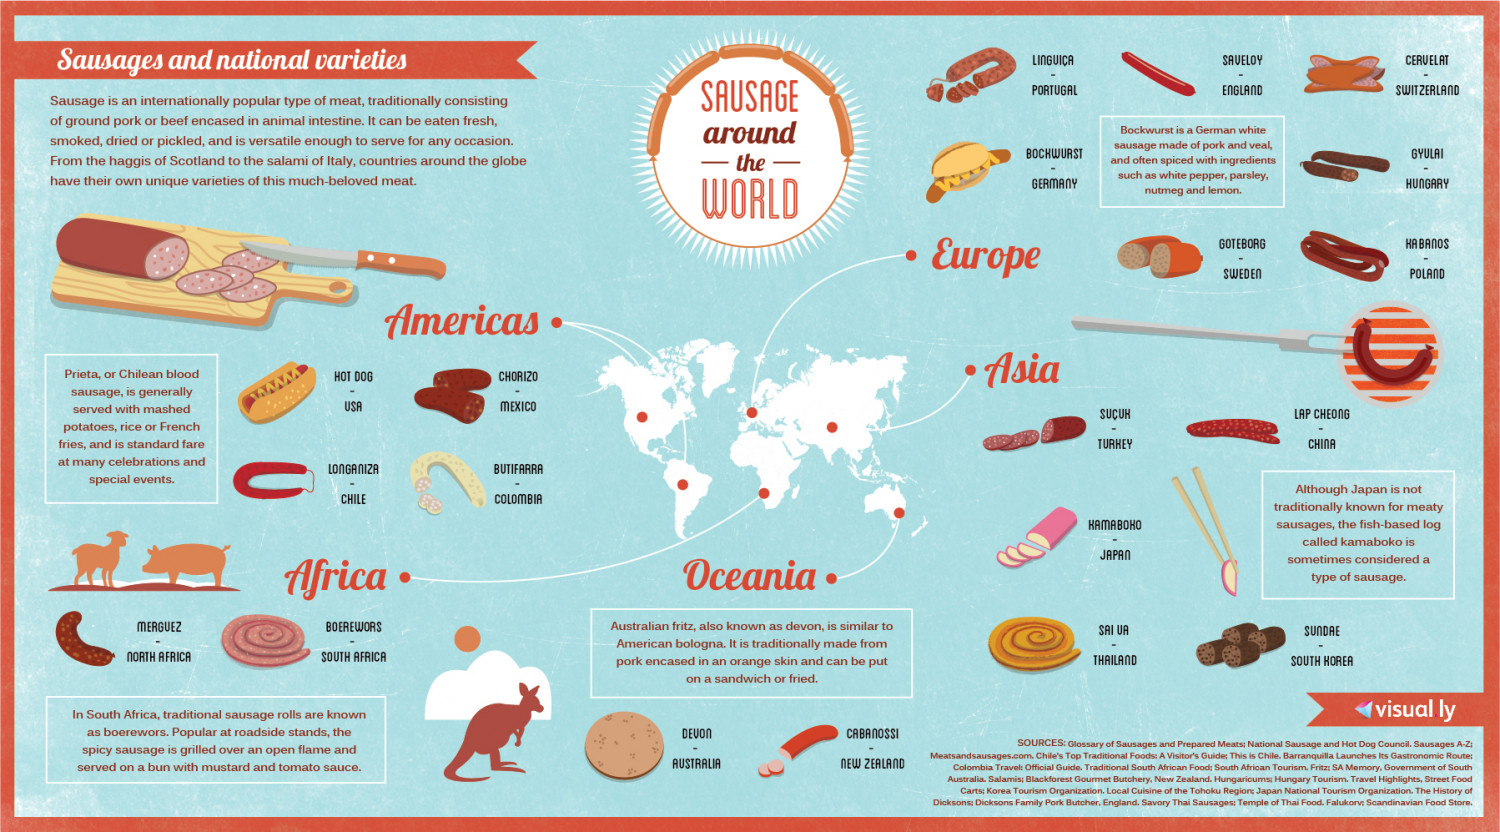 Sausage Around the World Infographic